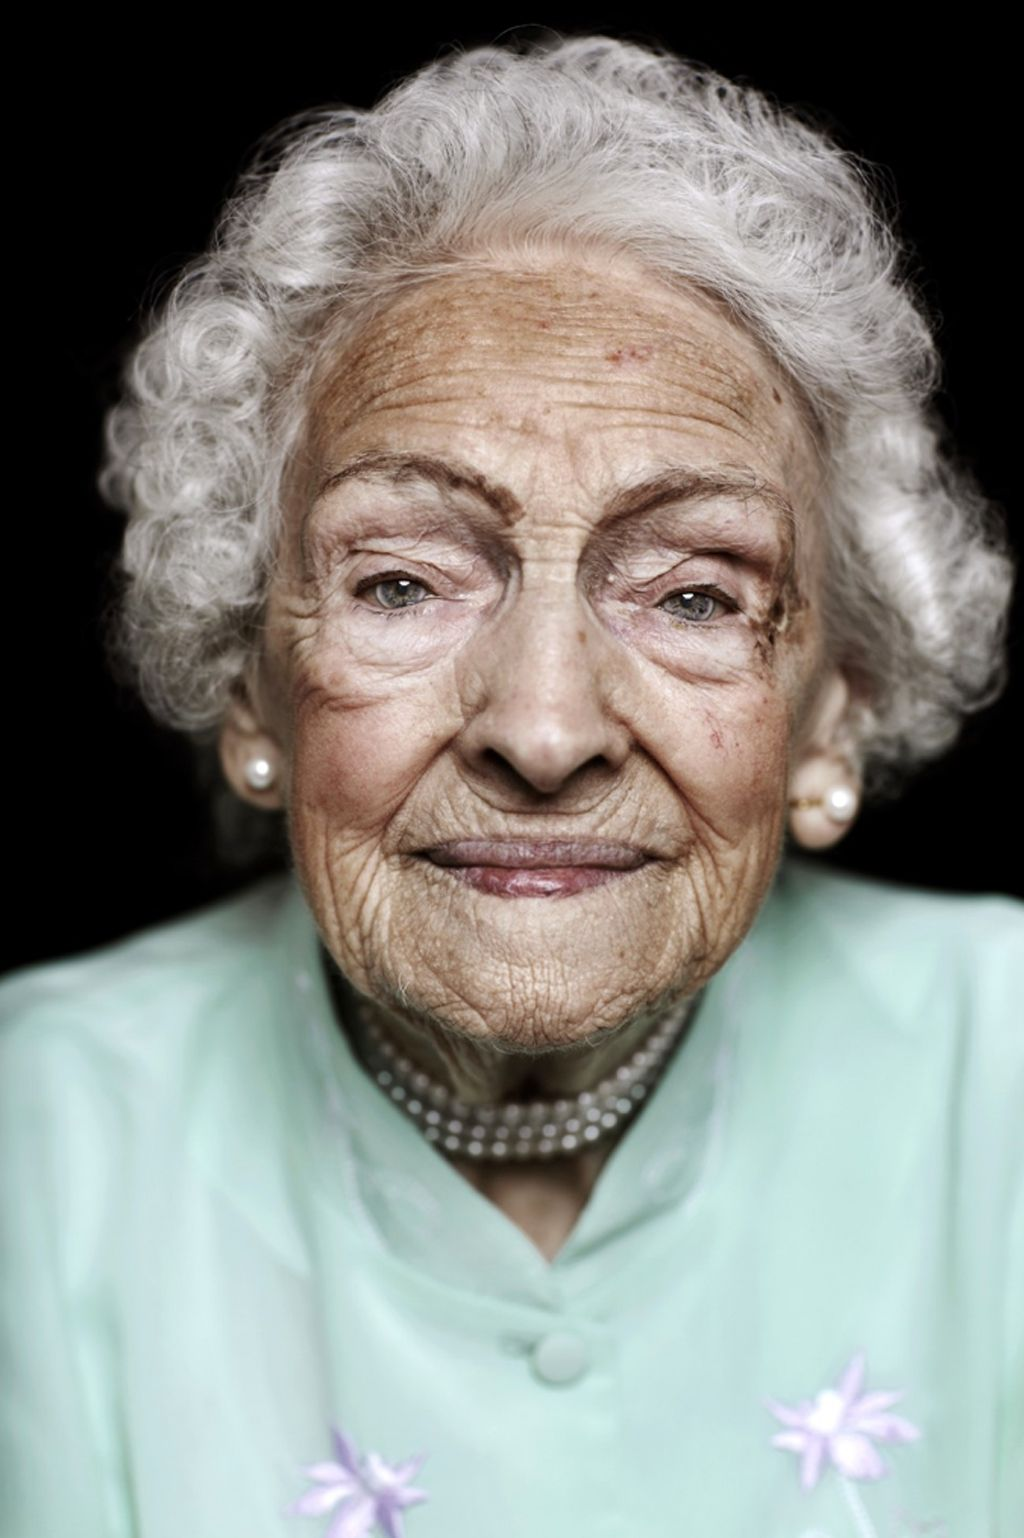 pussy pictures of old wrinkled women